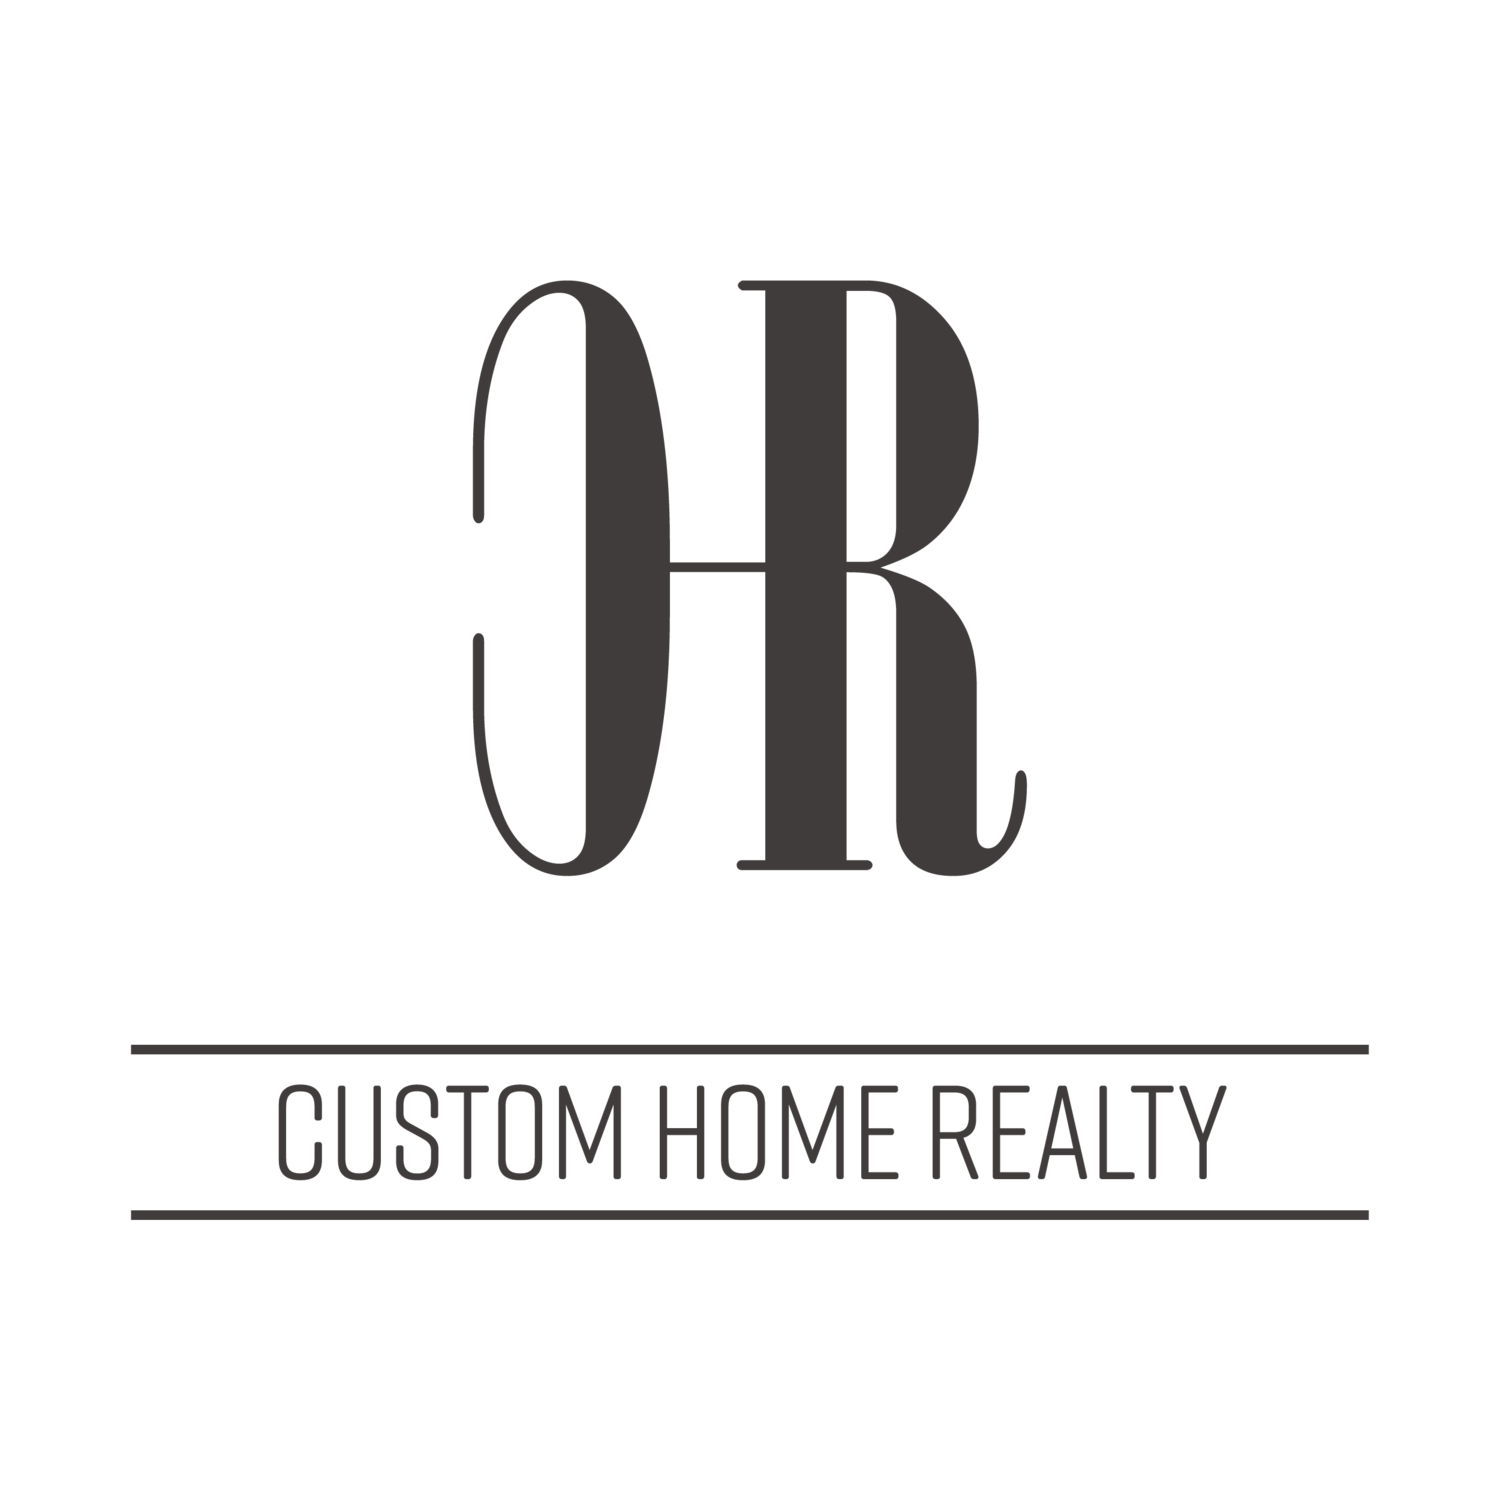 Custom Home Realty